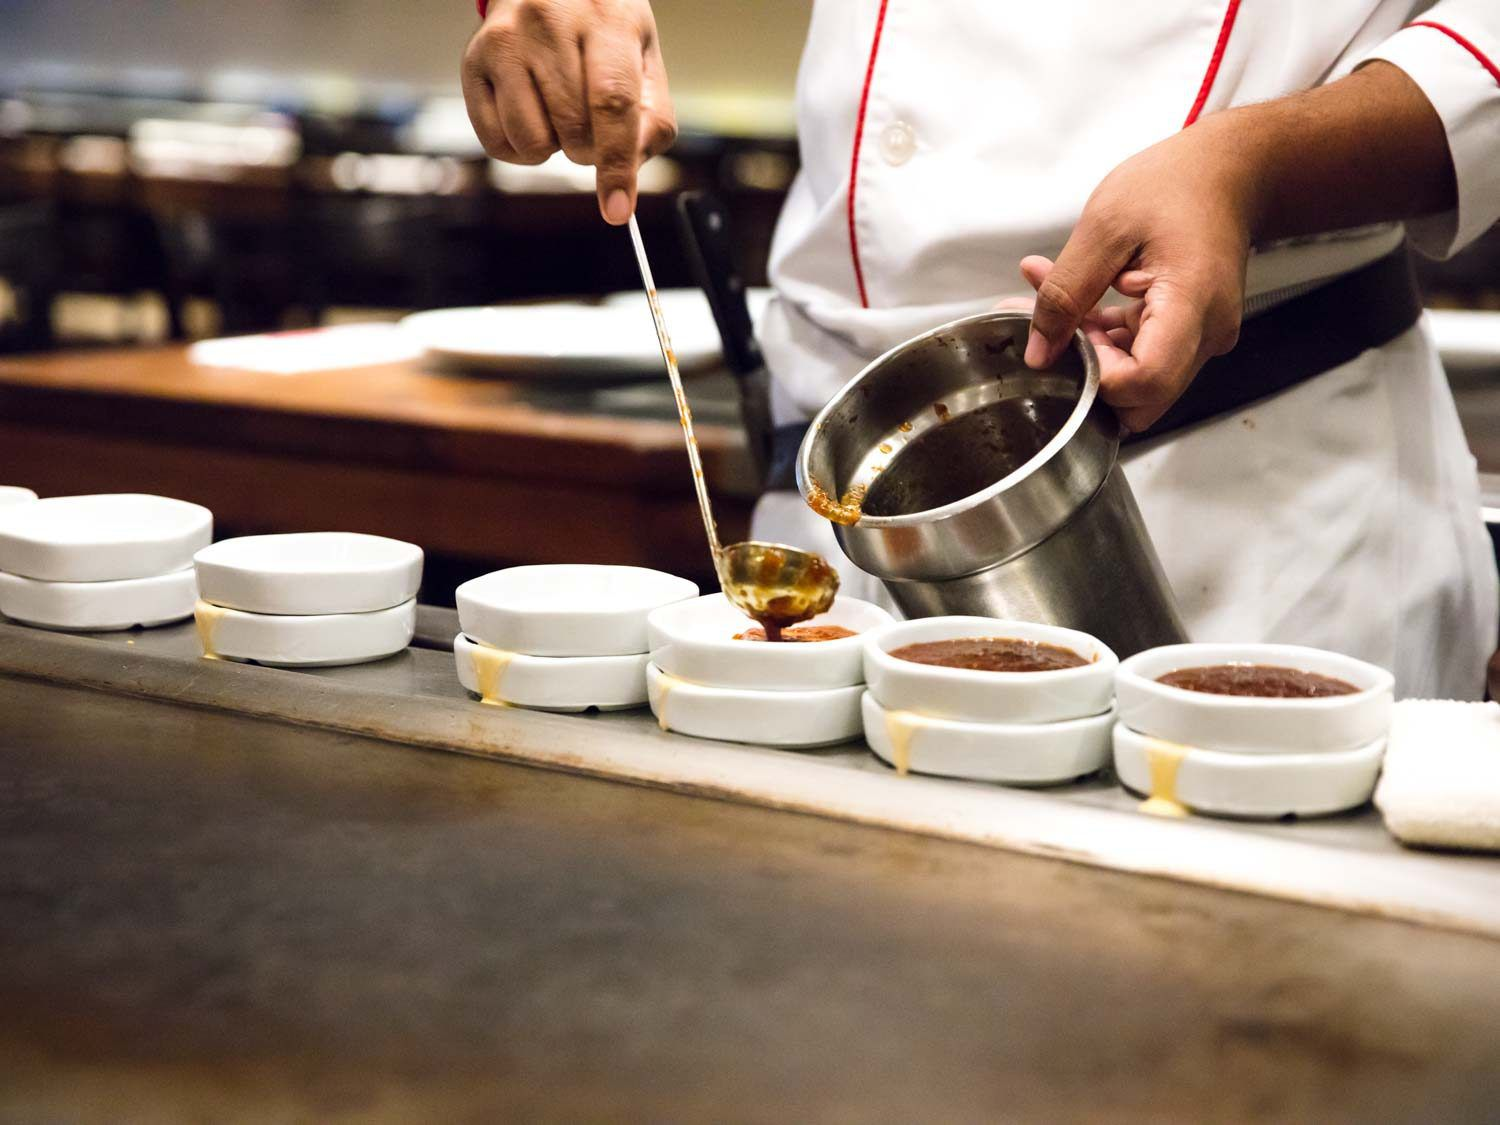 A Benihana cook portioning out dipping sauces